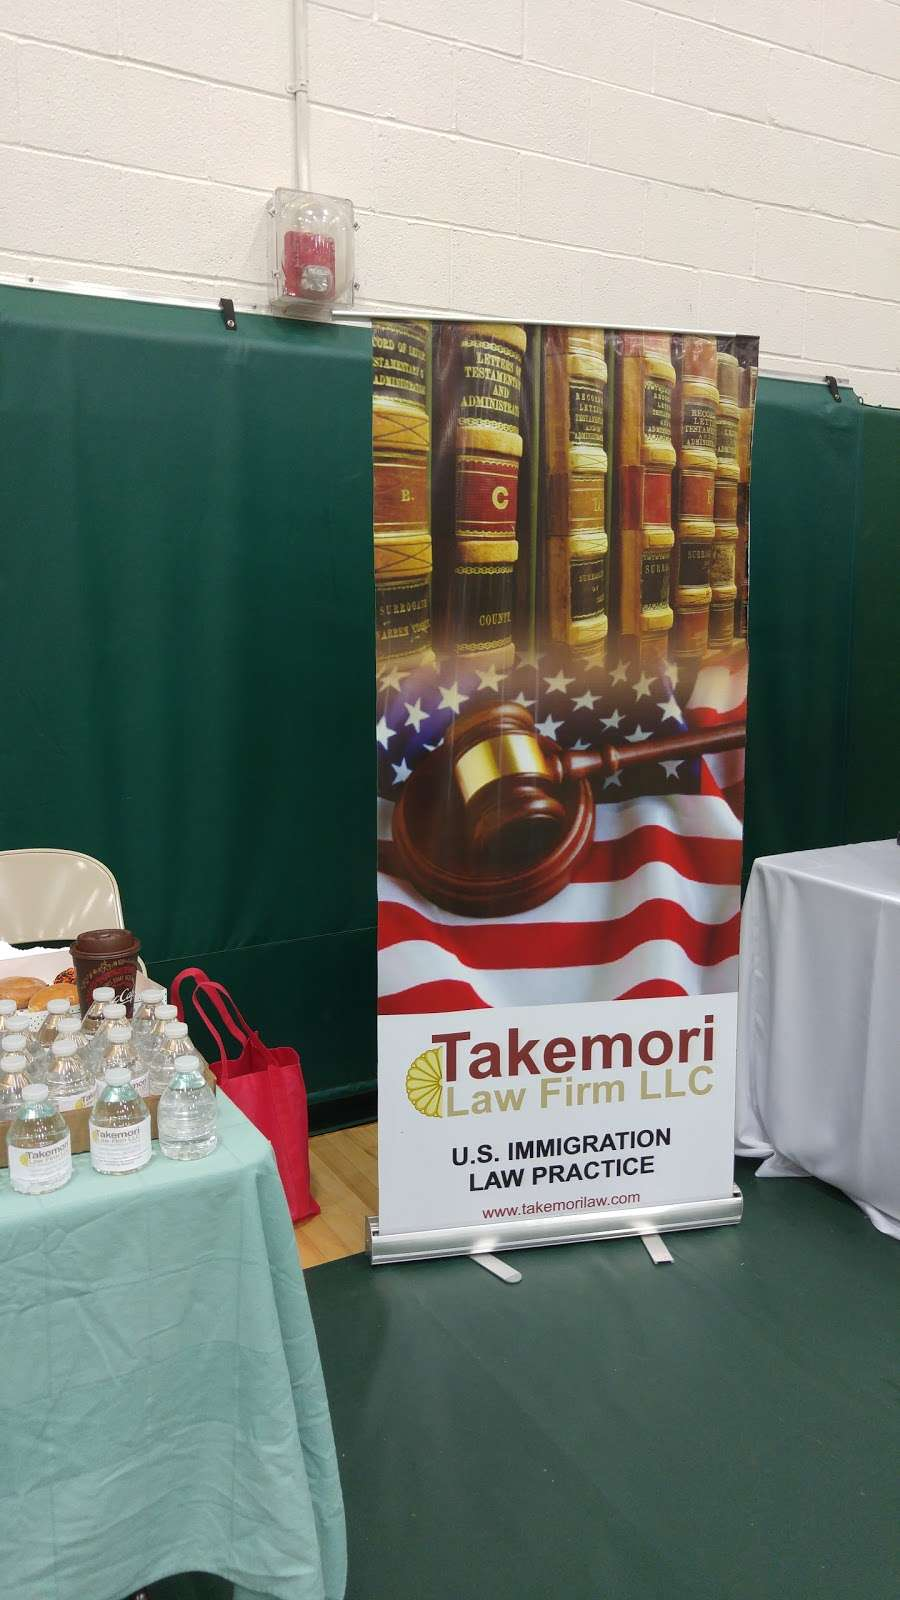 Takemori Law Firm LLC - store  | Photo 9 of 10 | Address: 12401 Middlebrook Road #240, Germantown, MD 20874, USA | Phone: (240) 644-2637